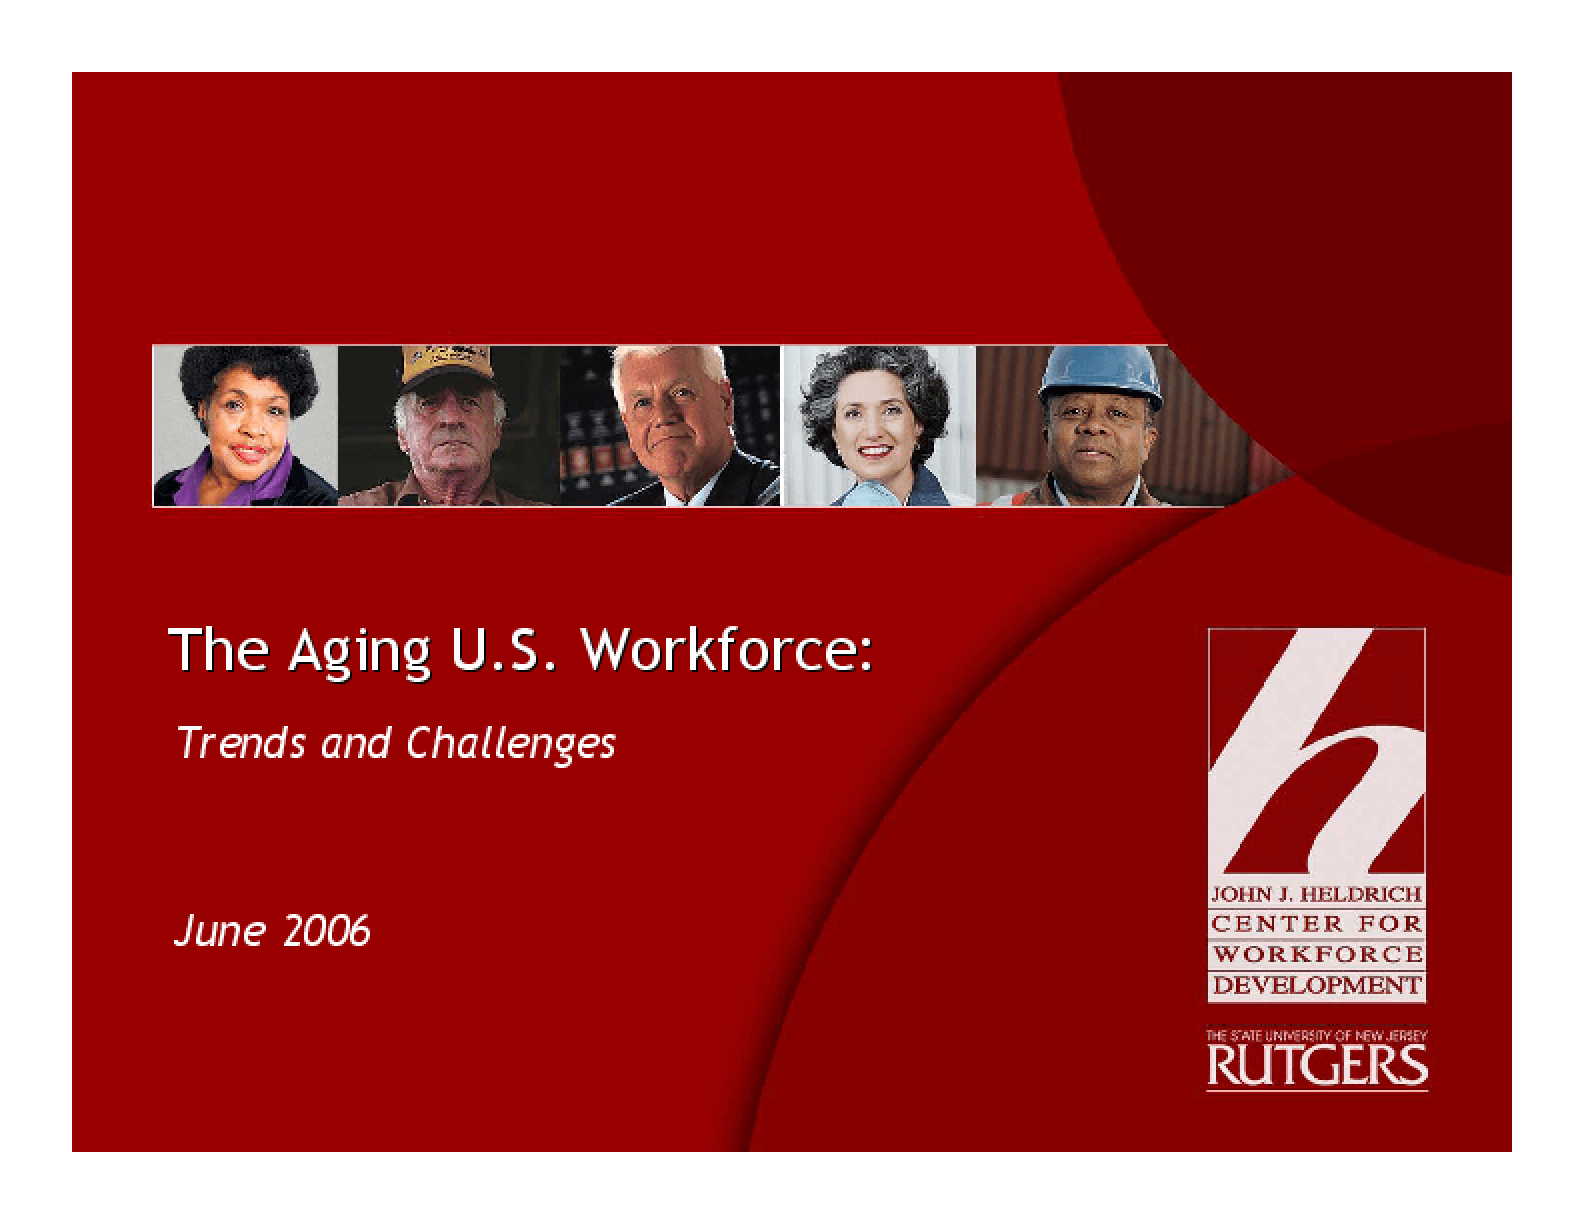 The Aging U.S. Workforce: Trends and Challenges